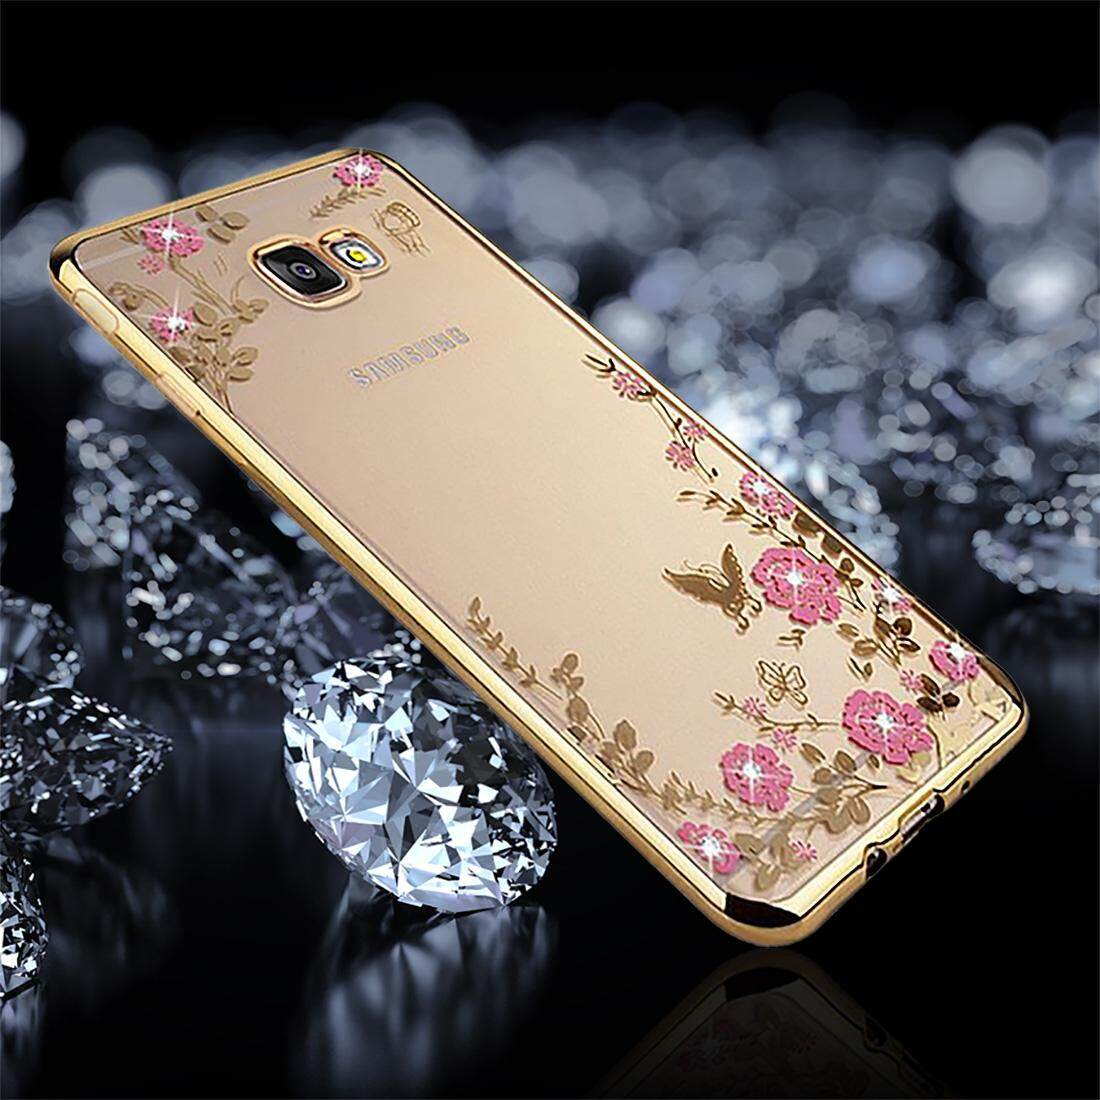 Features For Samsung Galaxy C9 Pro C900 Living Group Pattern J5 Prime Flowers Diamond Encrusted Electroplating Soft Tpu Protective Cover Case